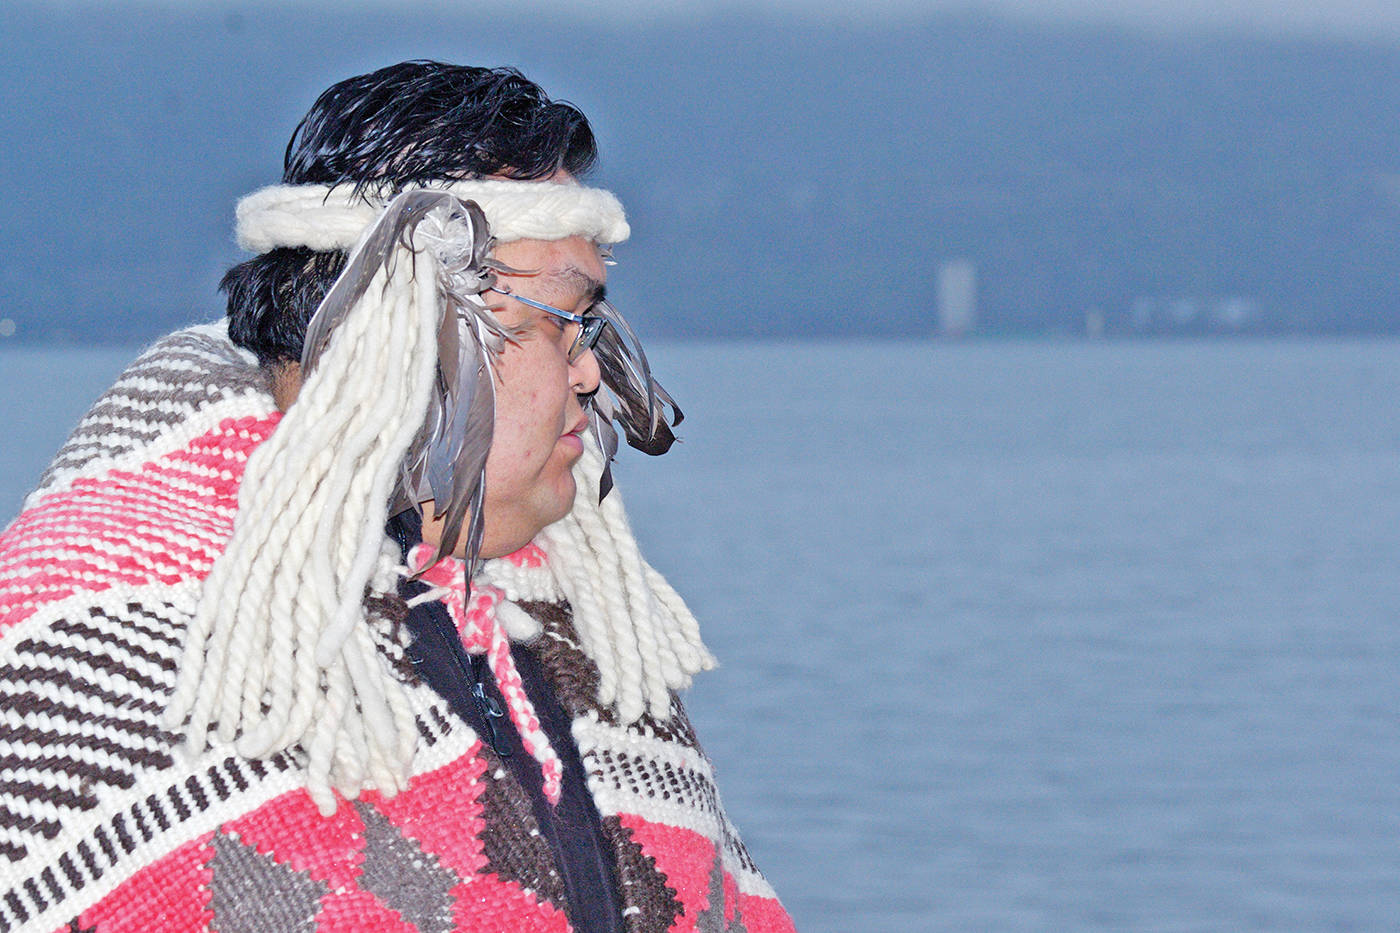 Chief Don Tom of the Tsartlip First Nation was outraged after Green MLA Adam Olsen revealed on social media that the community had been experiencing a COVID-19 outbreak – a fact the First Nation had chosen to keep private to avoid racist backlash as experienced by the Cowichan Tribes when an outbreak was declared there in January. (Black Press Media file photo)